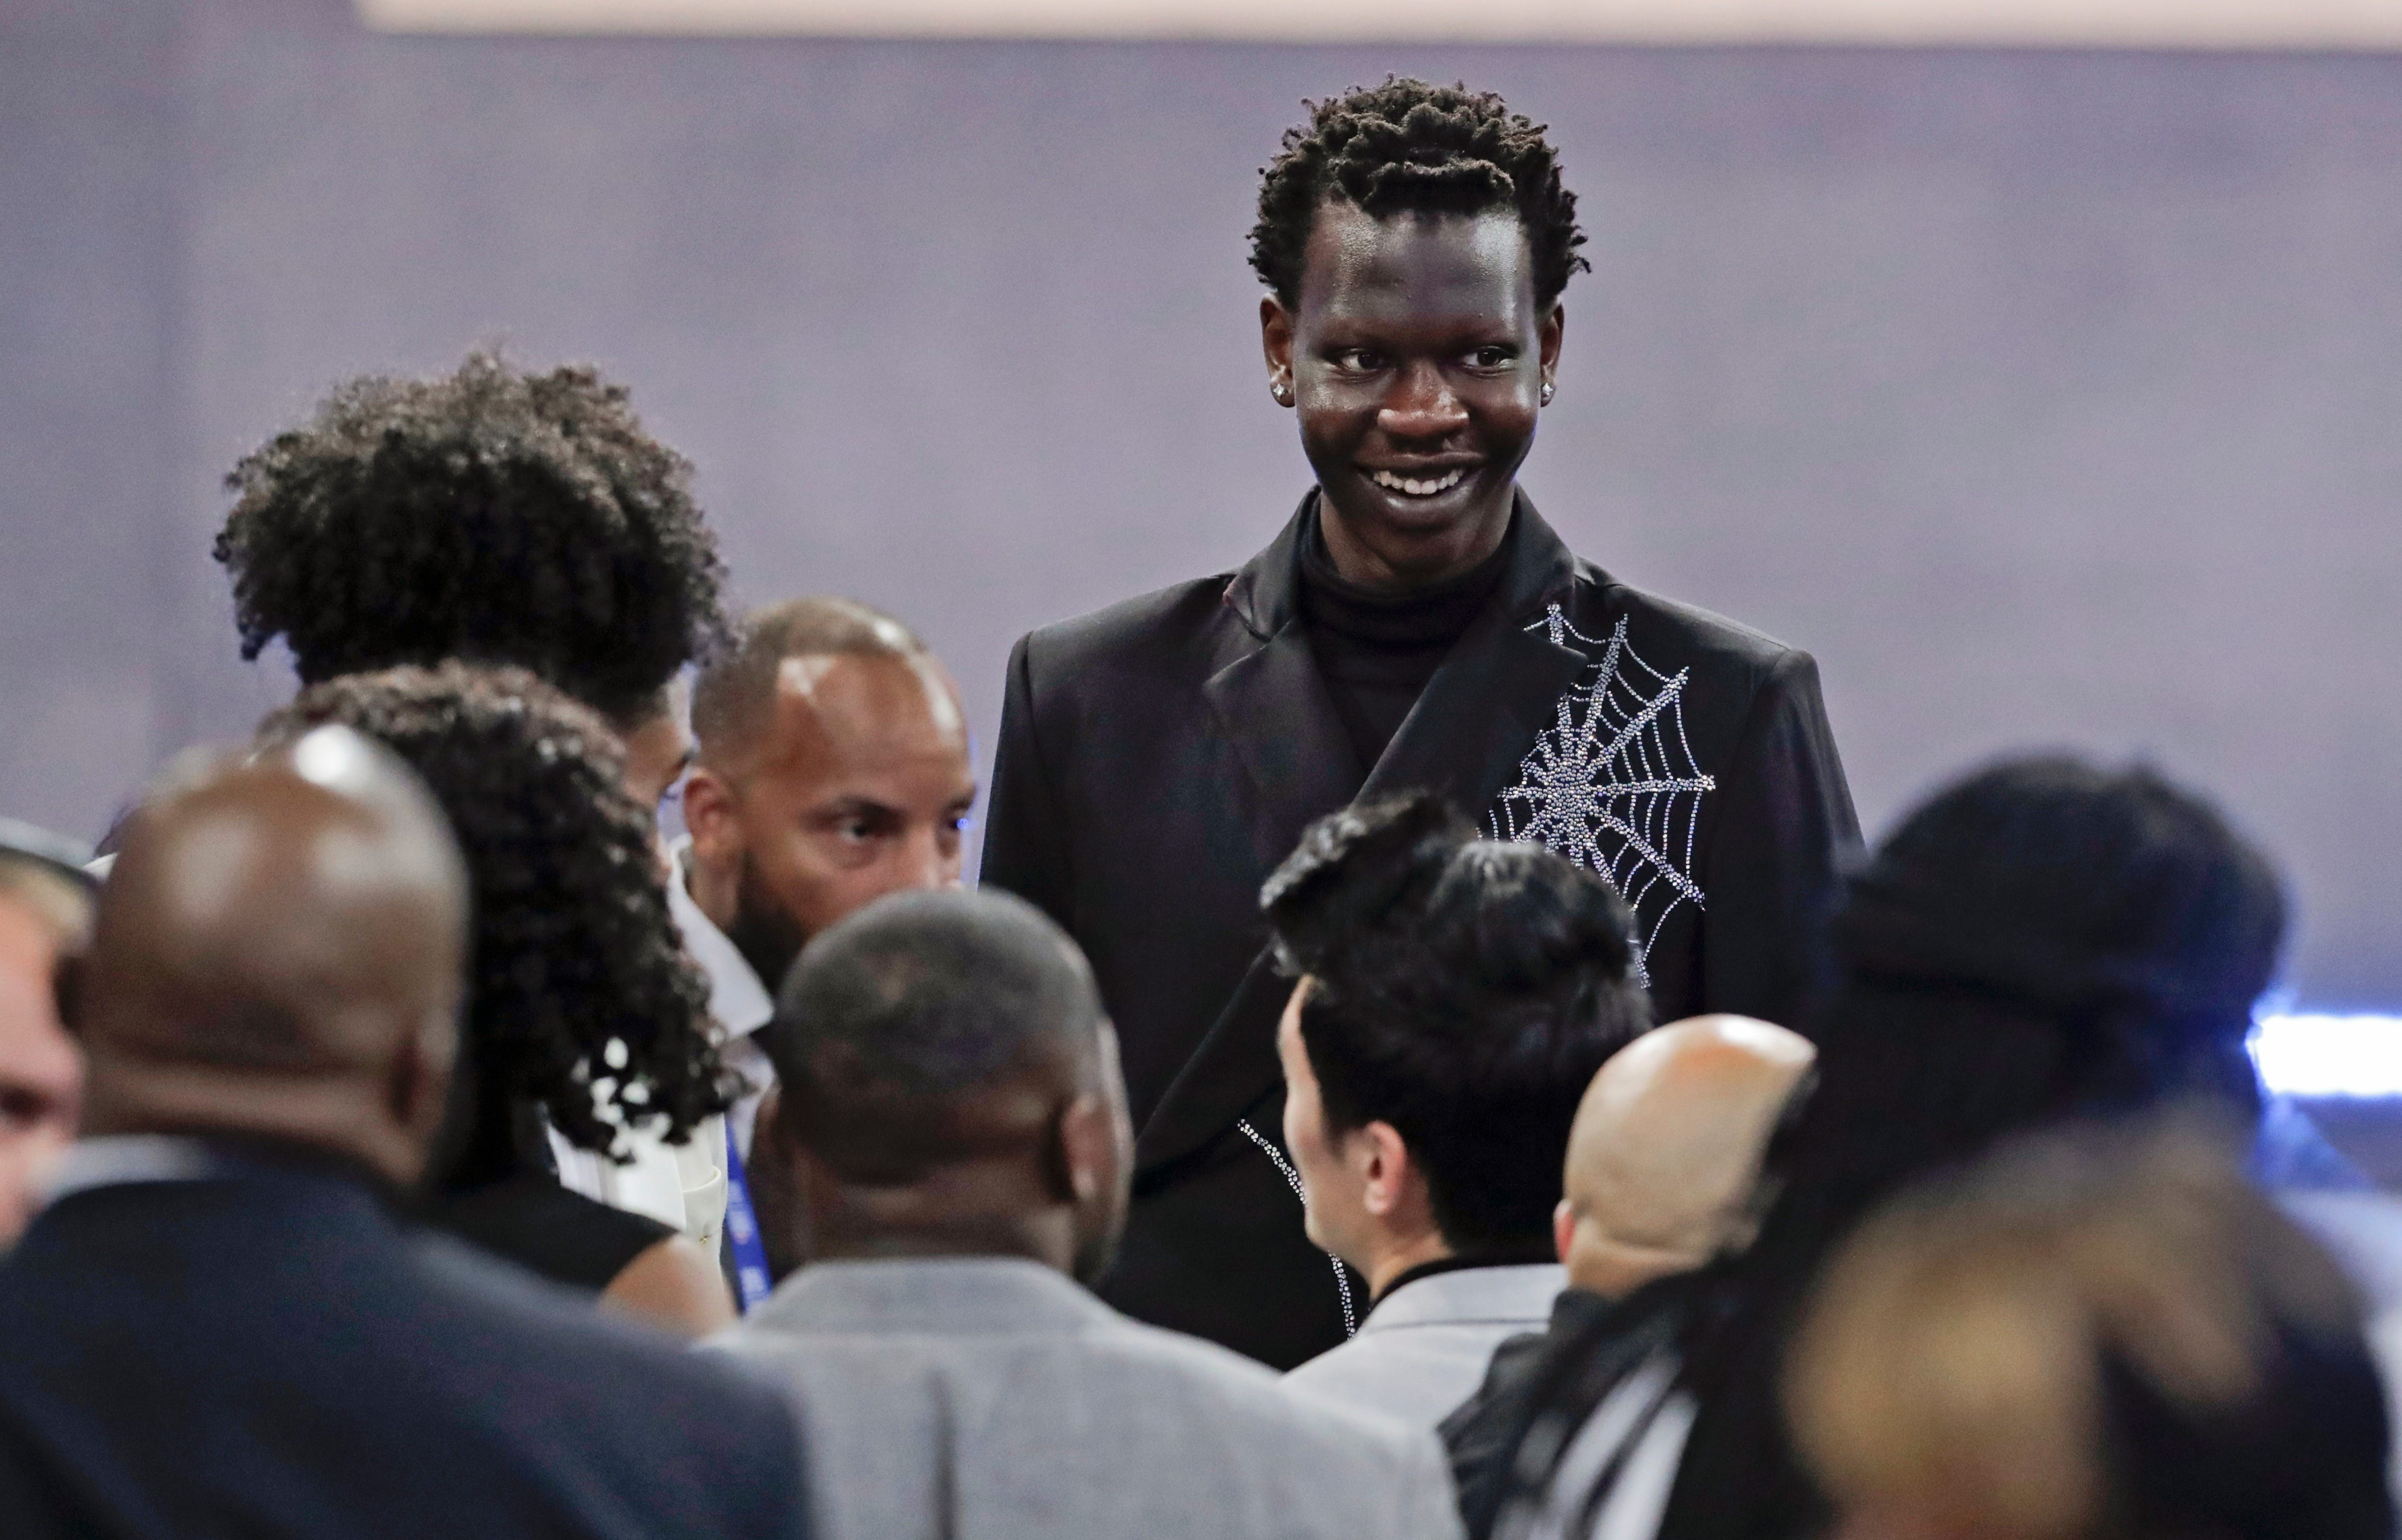 Nuggets pick up Bol Bol in 2nd round trade with Heat thumbnail